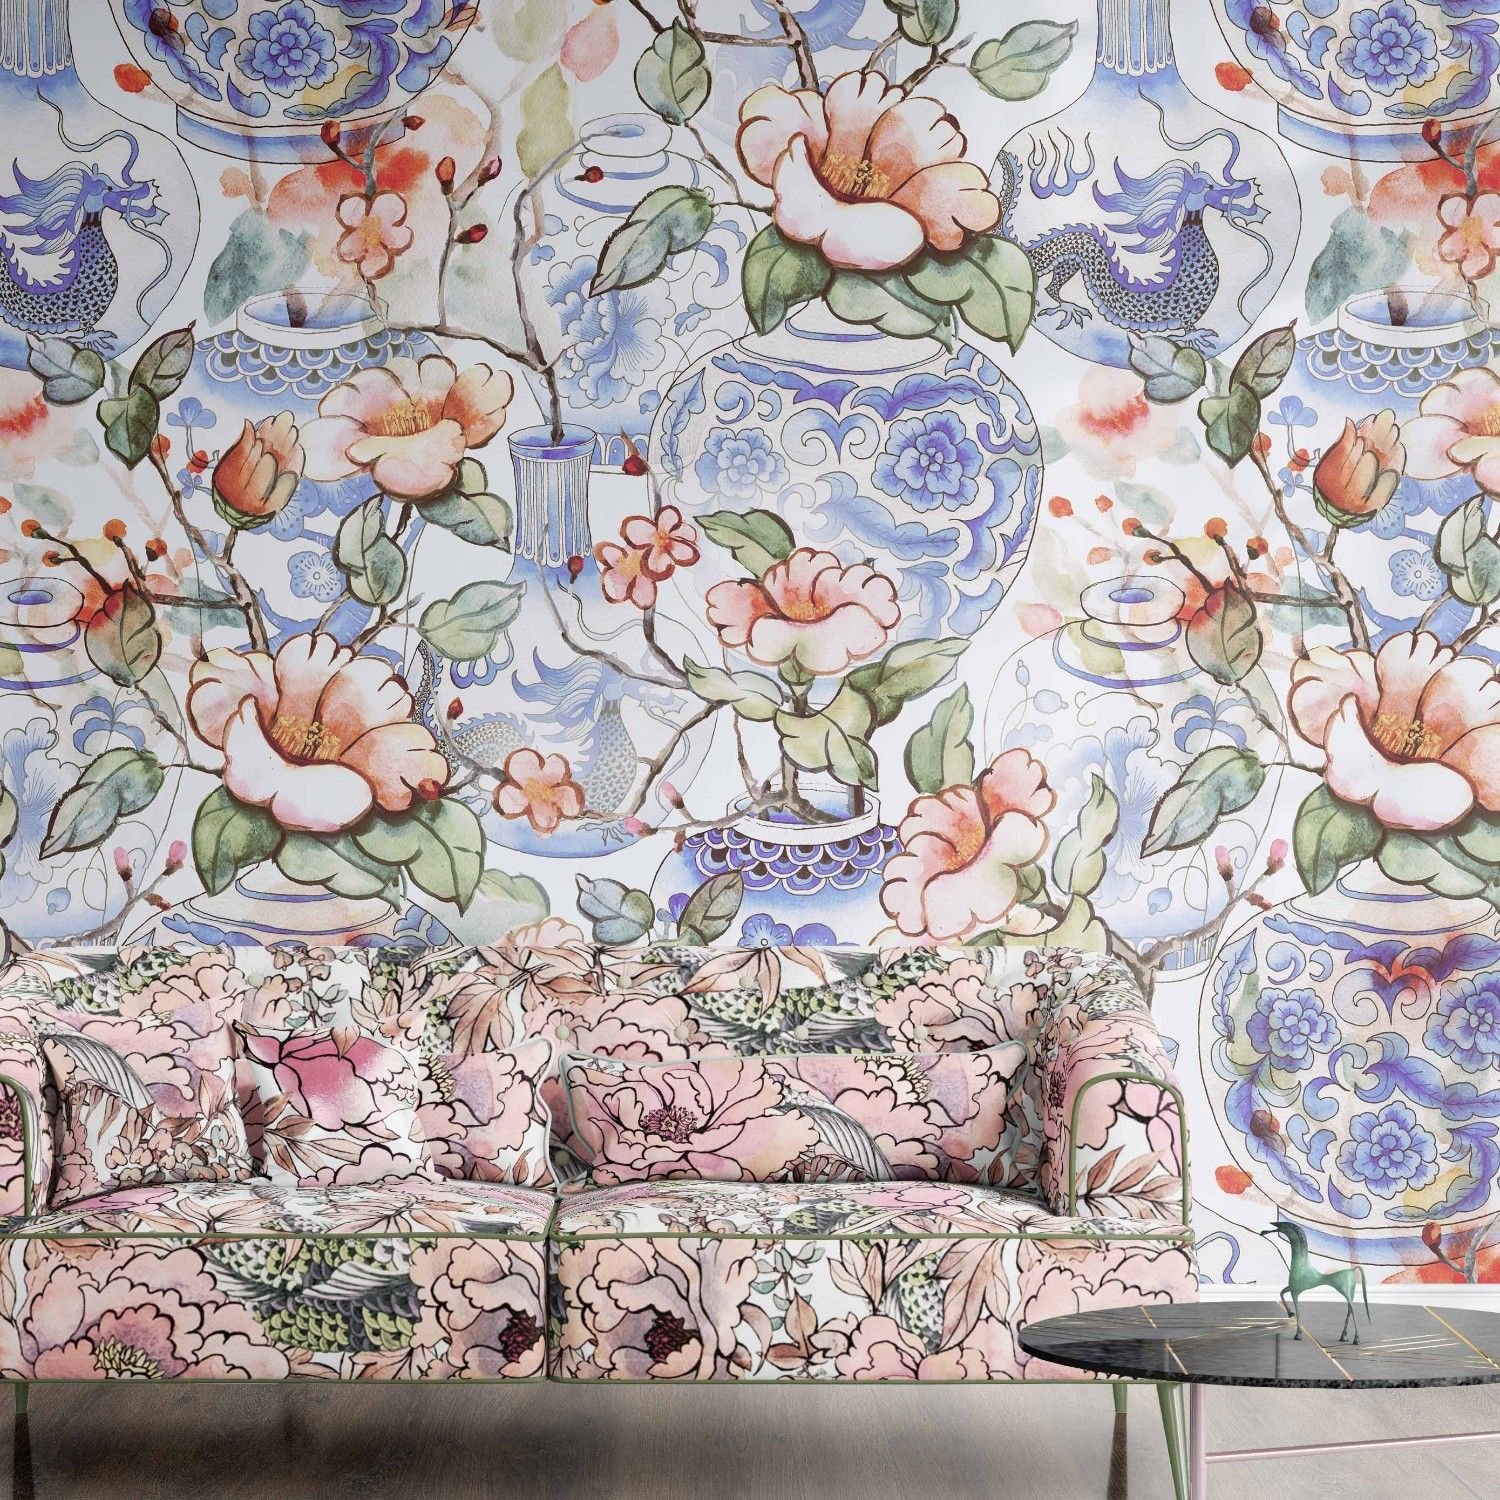 treasures of tokyo concept wallpaper upholstery